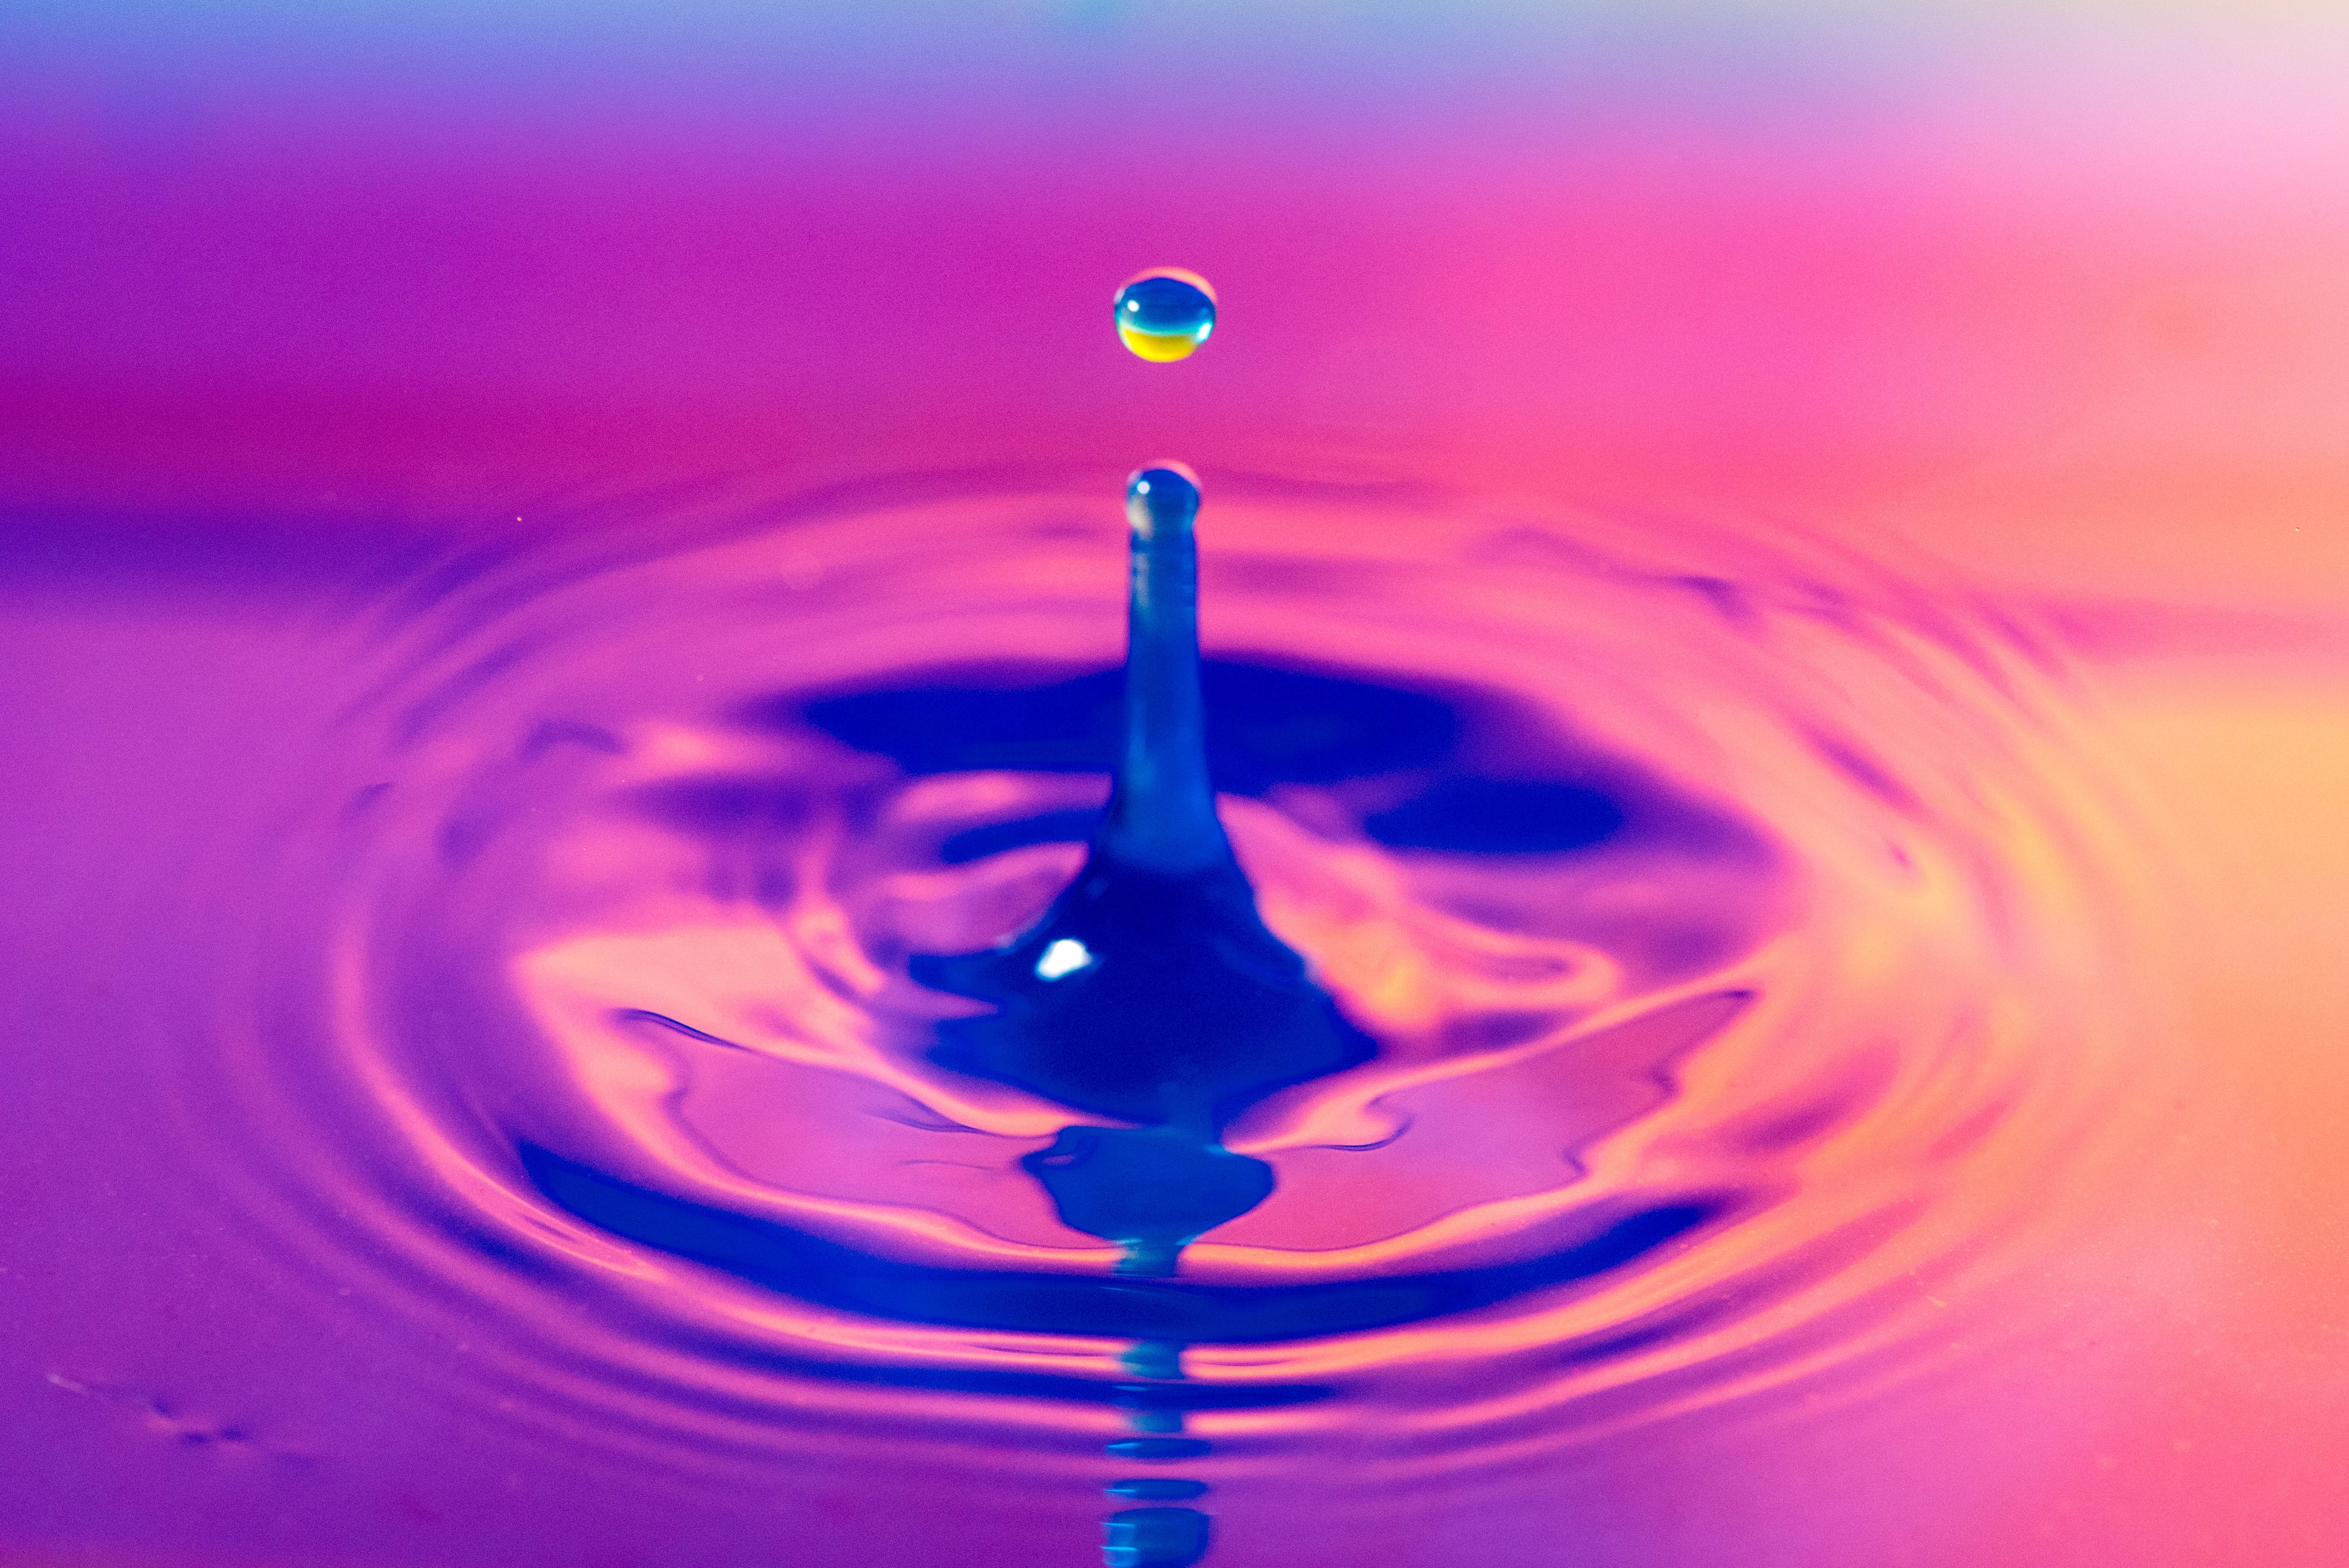 A droplet of water falling into a pool, all tinted purple and orange.